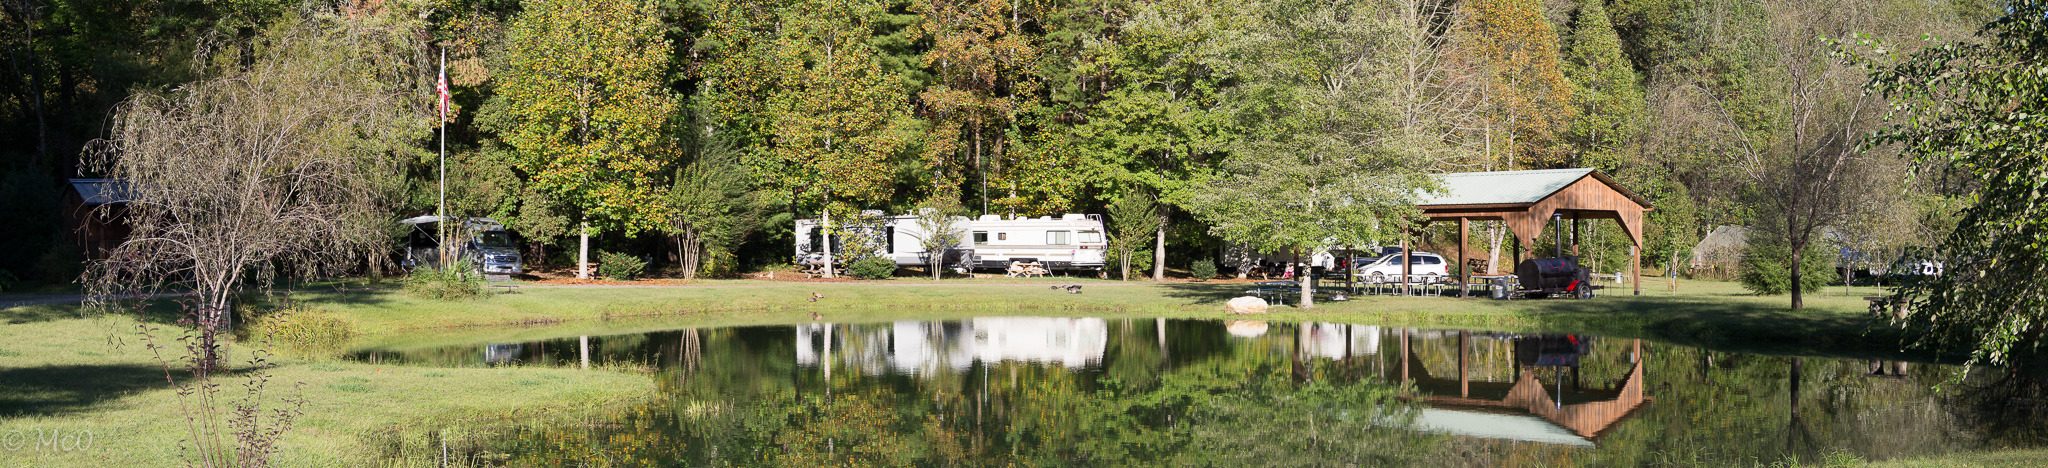 Persimmon campground nr Murphy NC